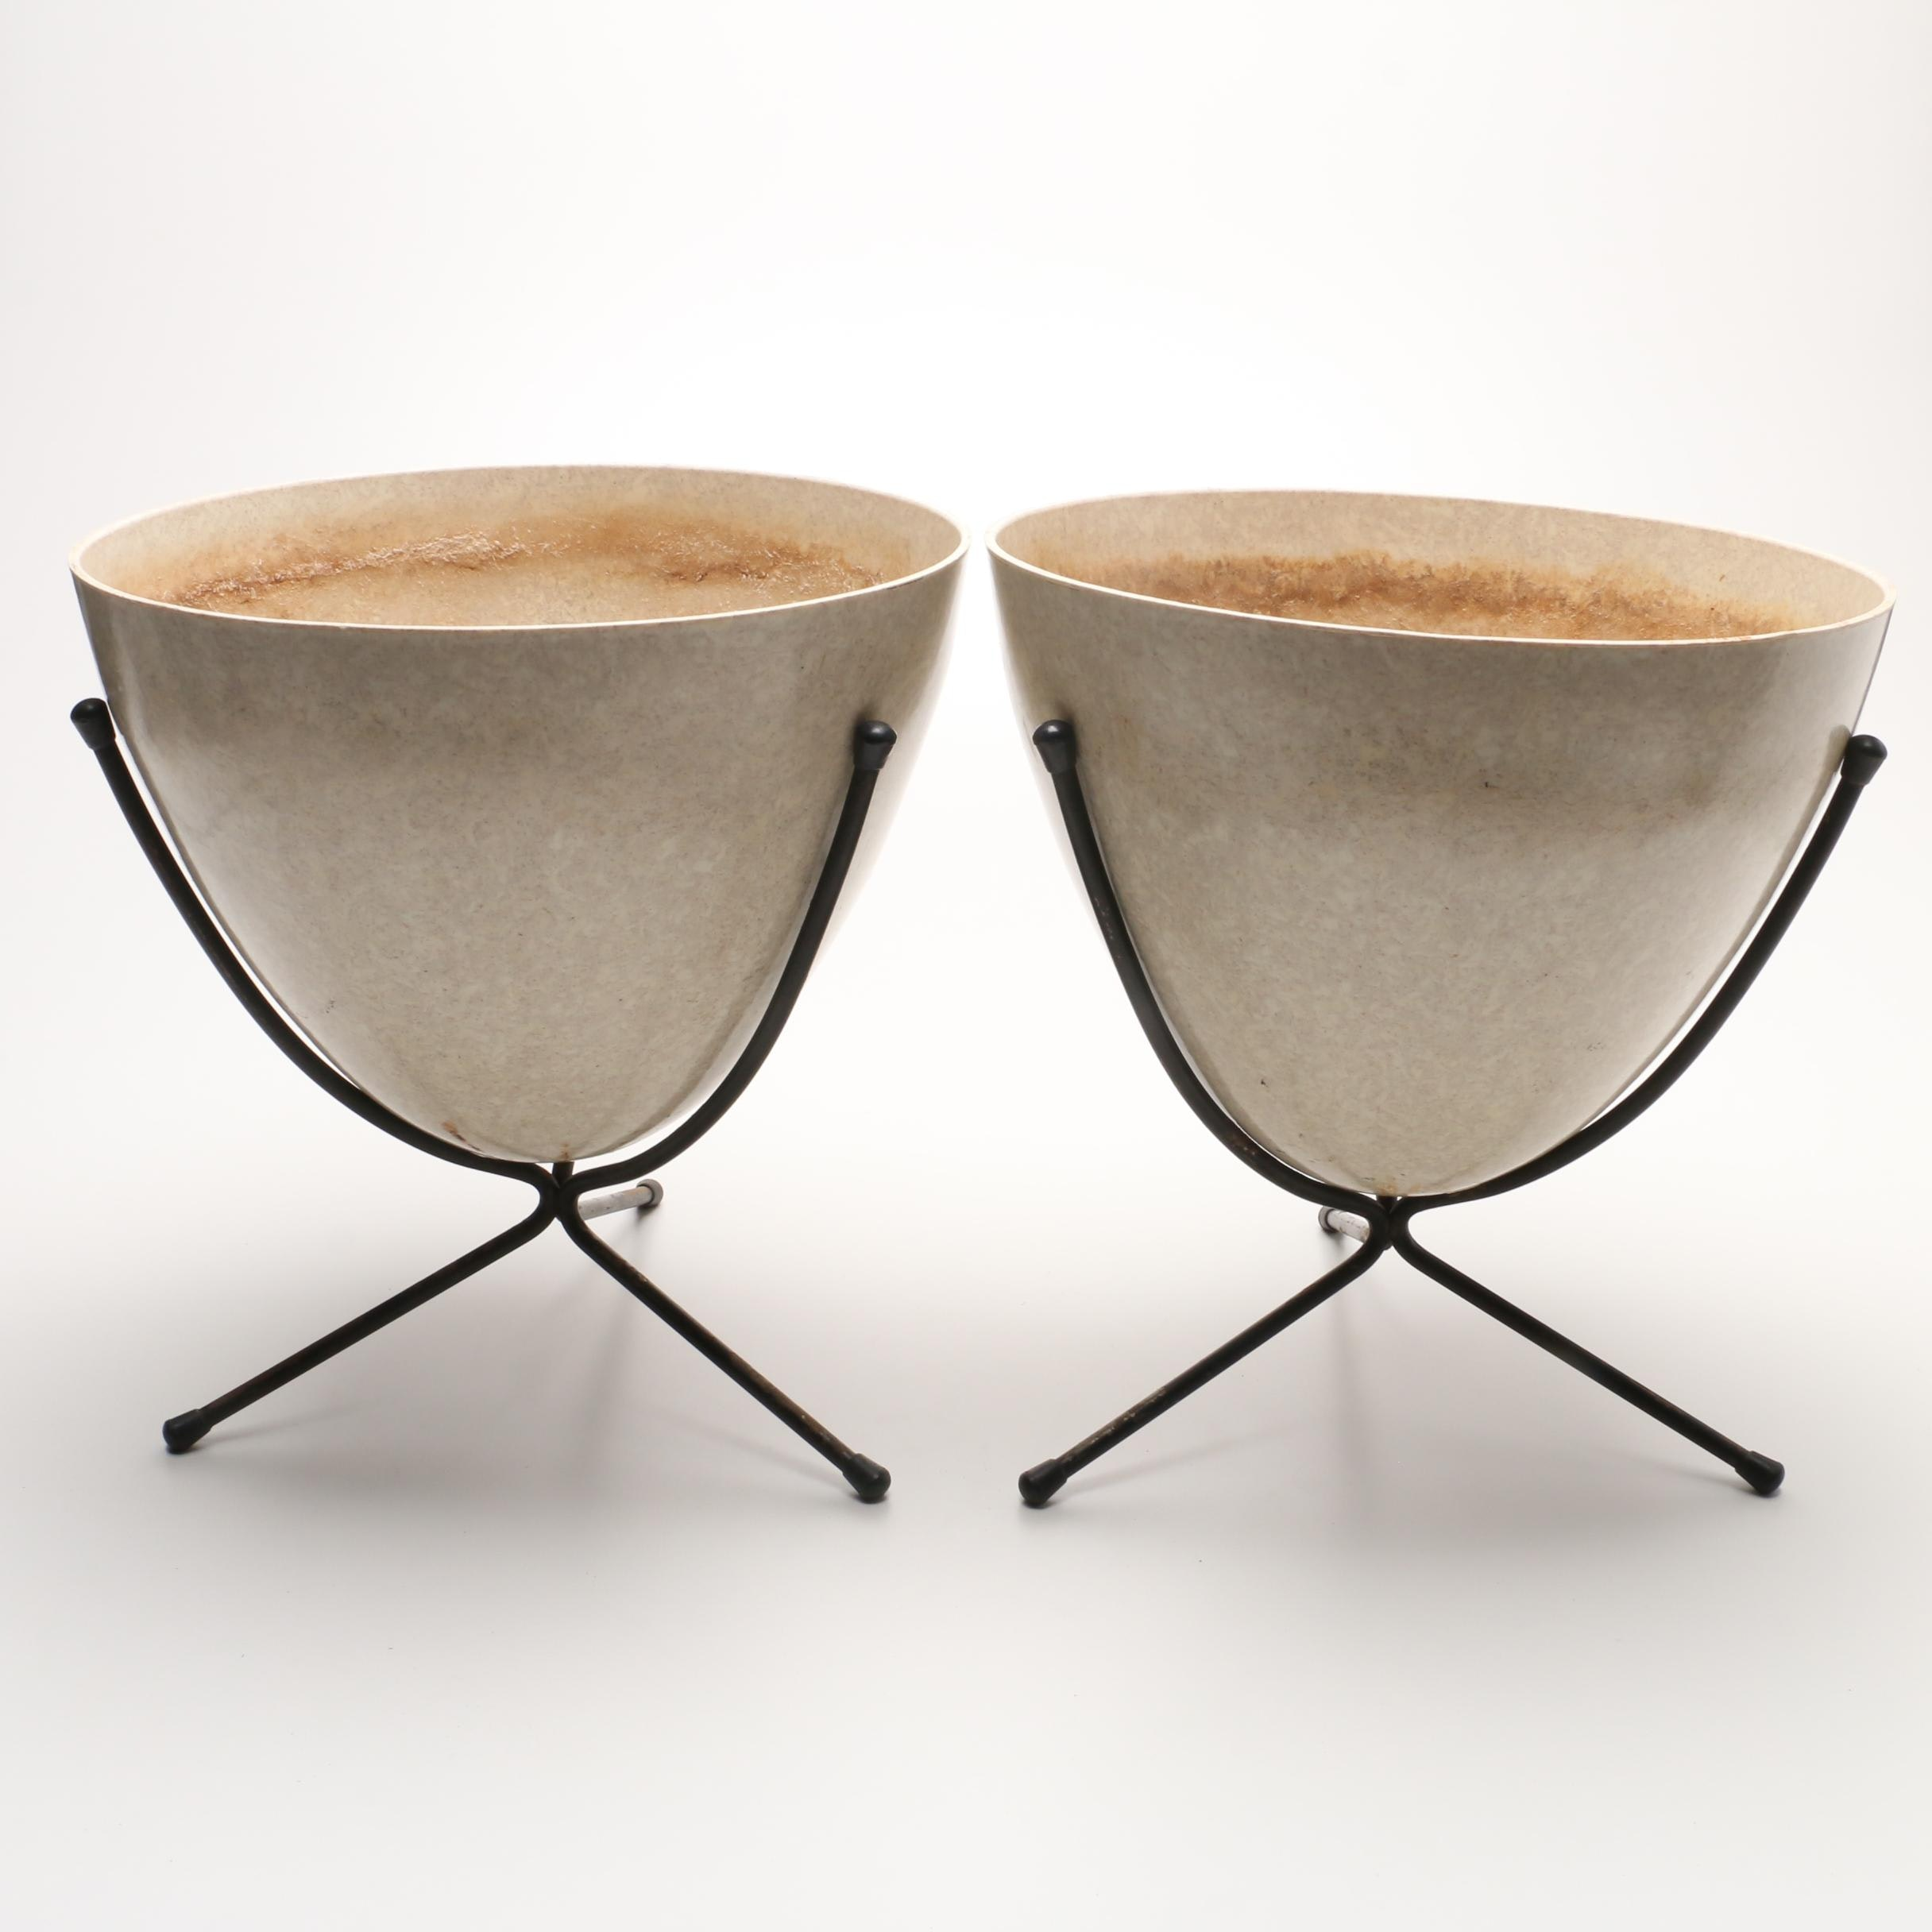 Pair of Off White Egg Shaped Planters With Stands